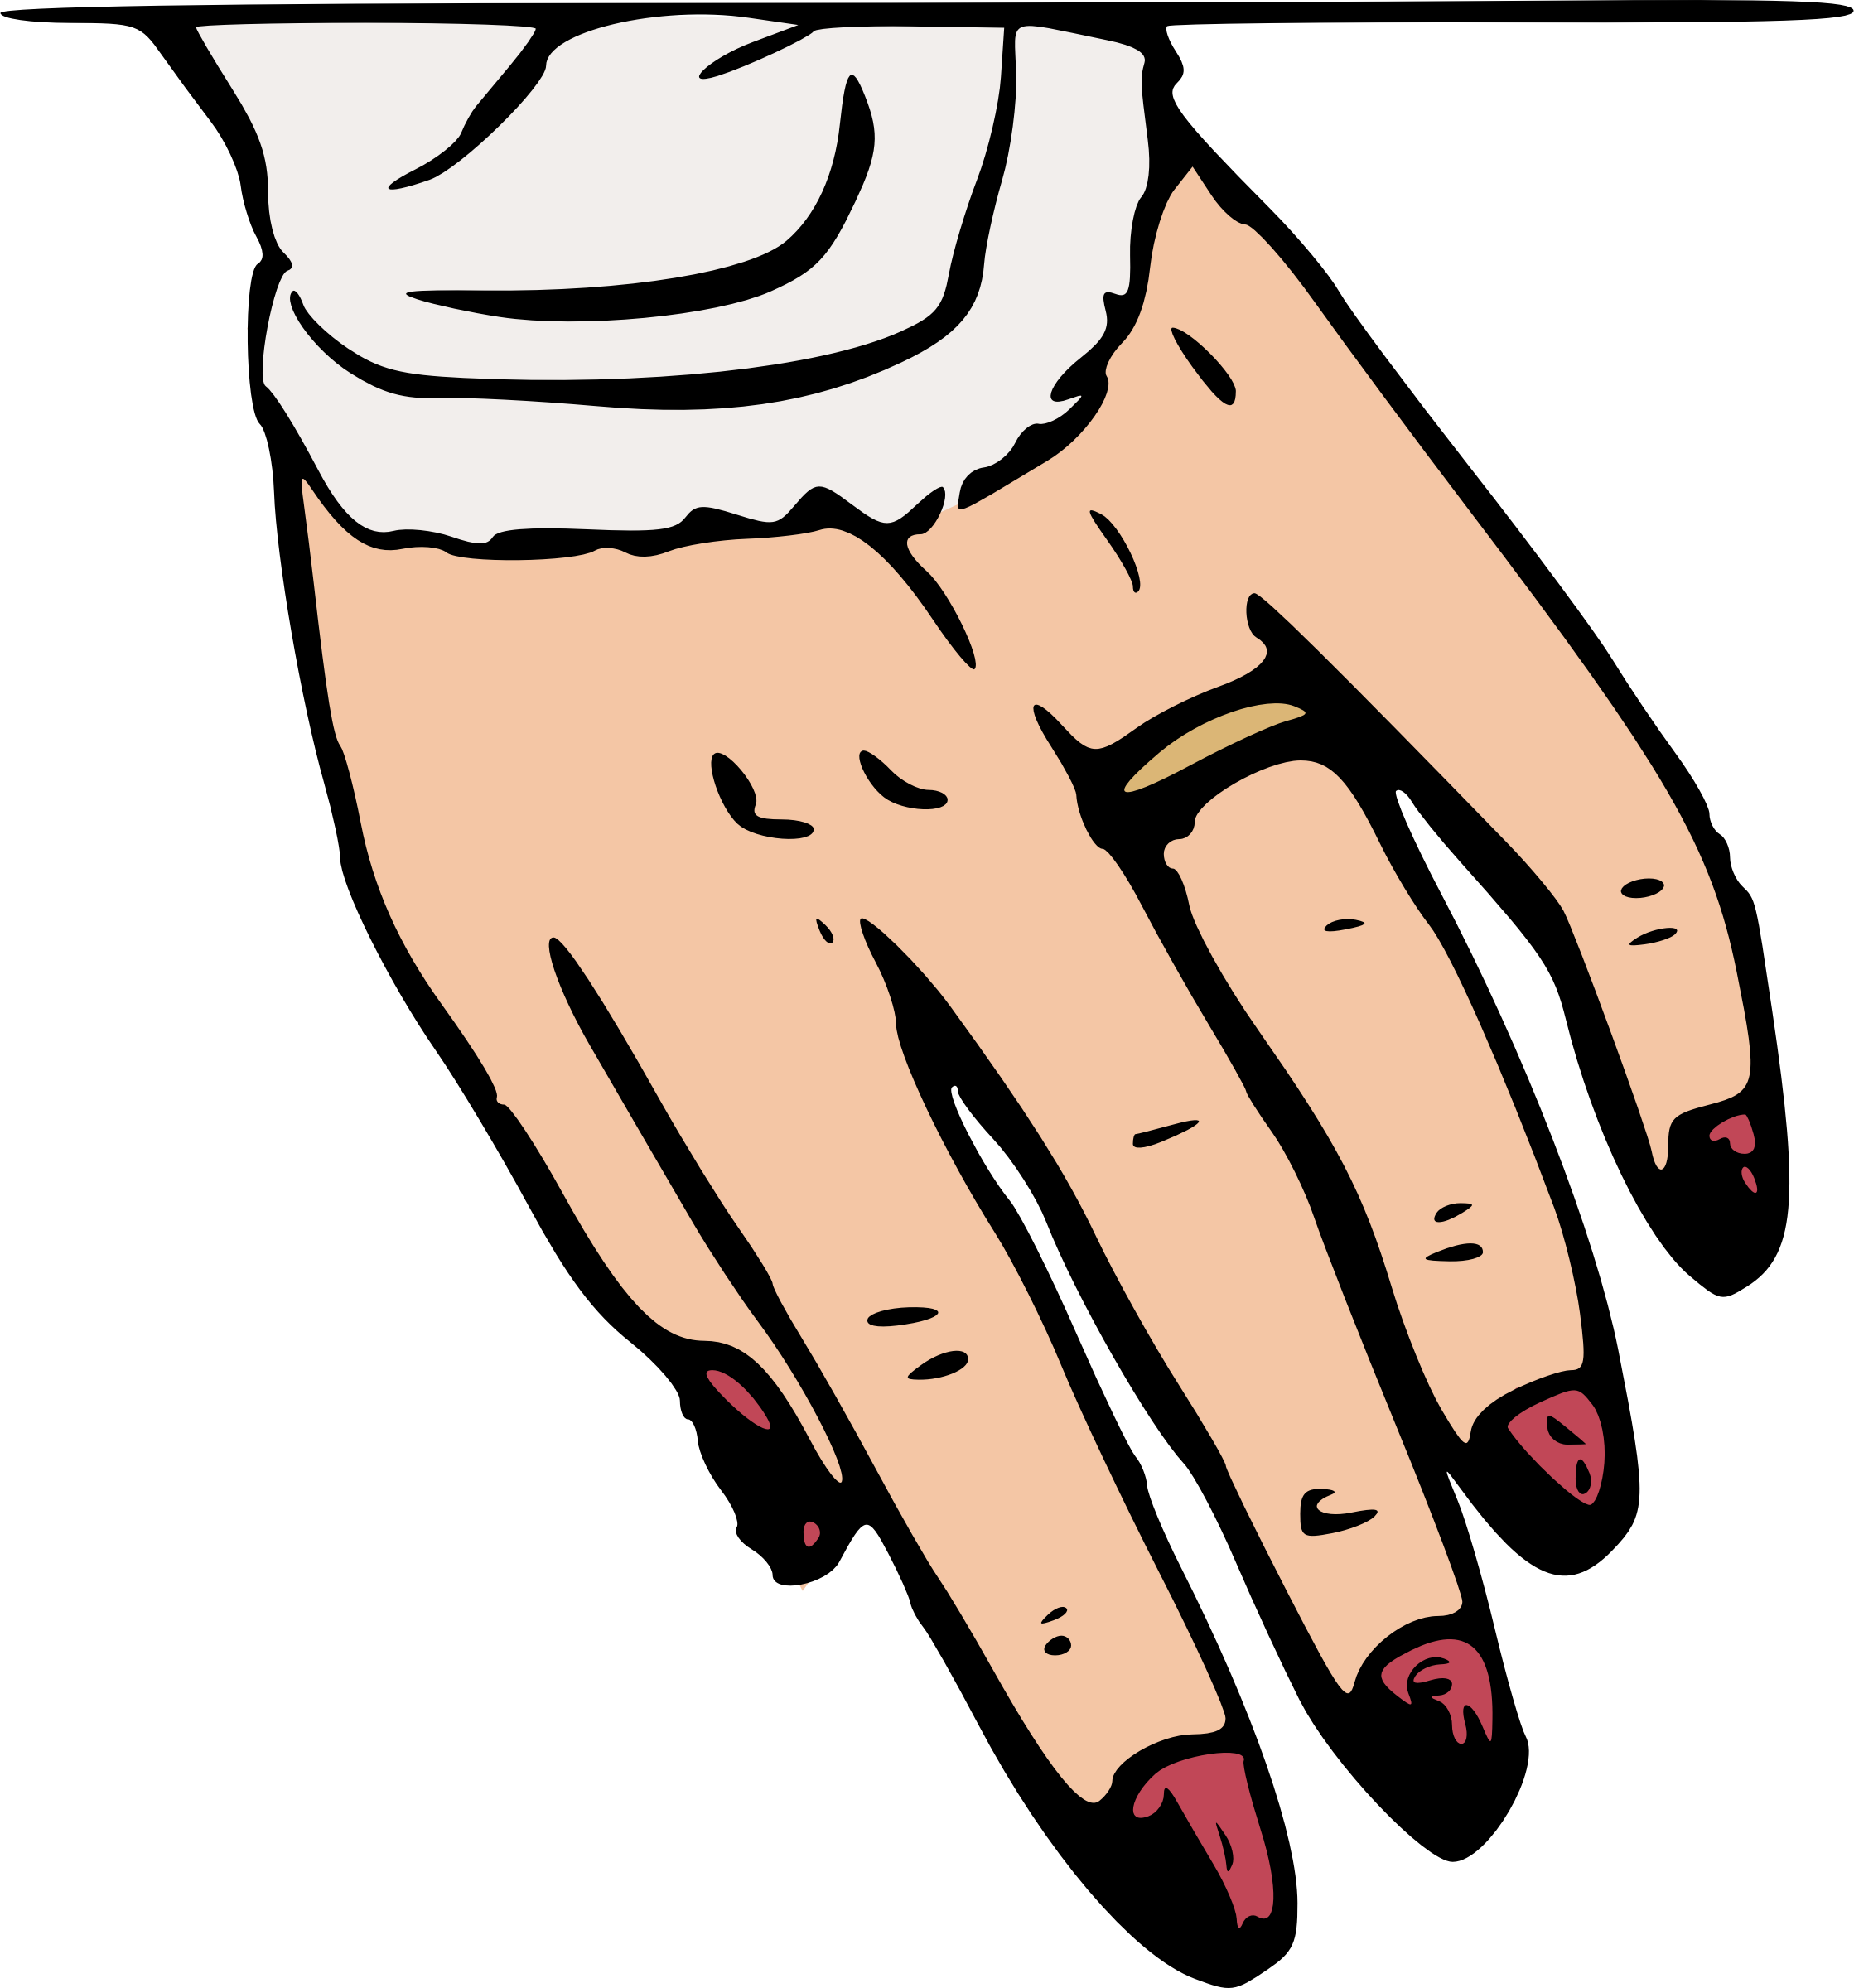 Fingers clipart nice hand. Ring finger big image